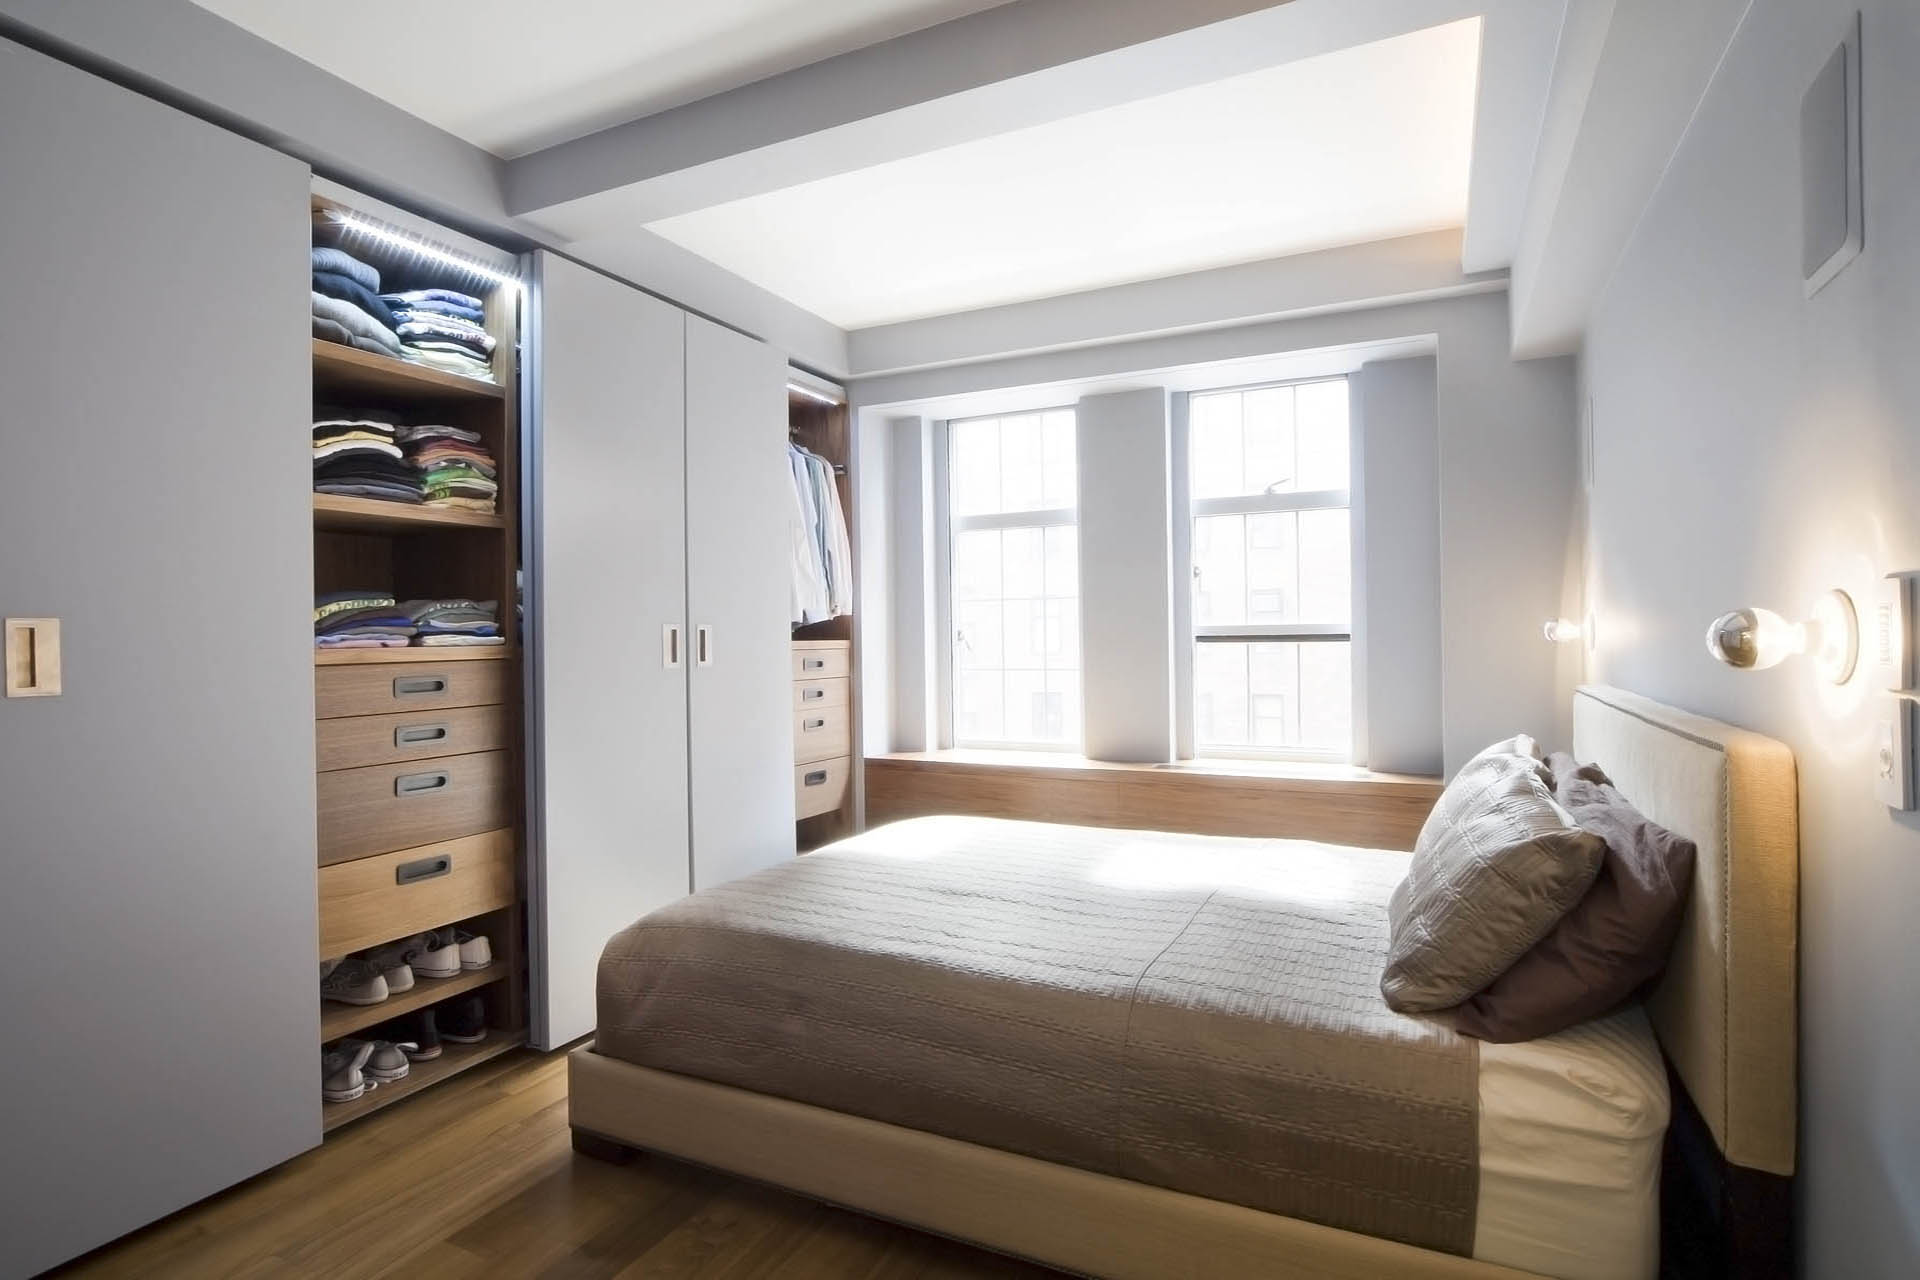 Bedroom at West 24th Street - Element Design Group NYC